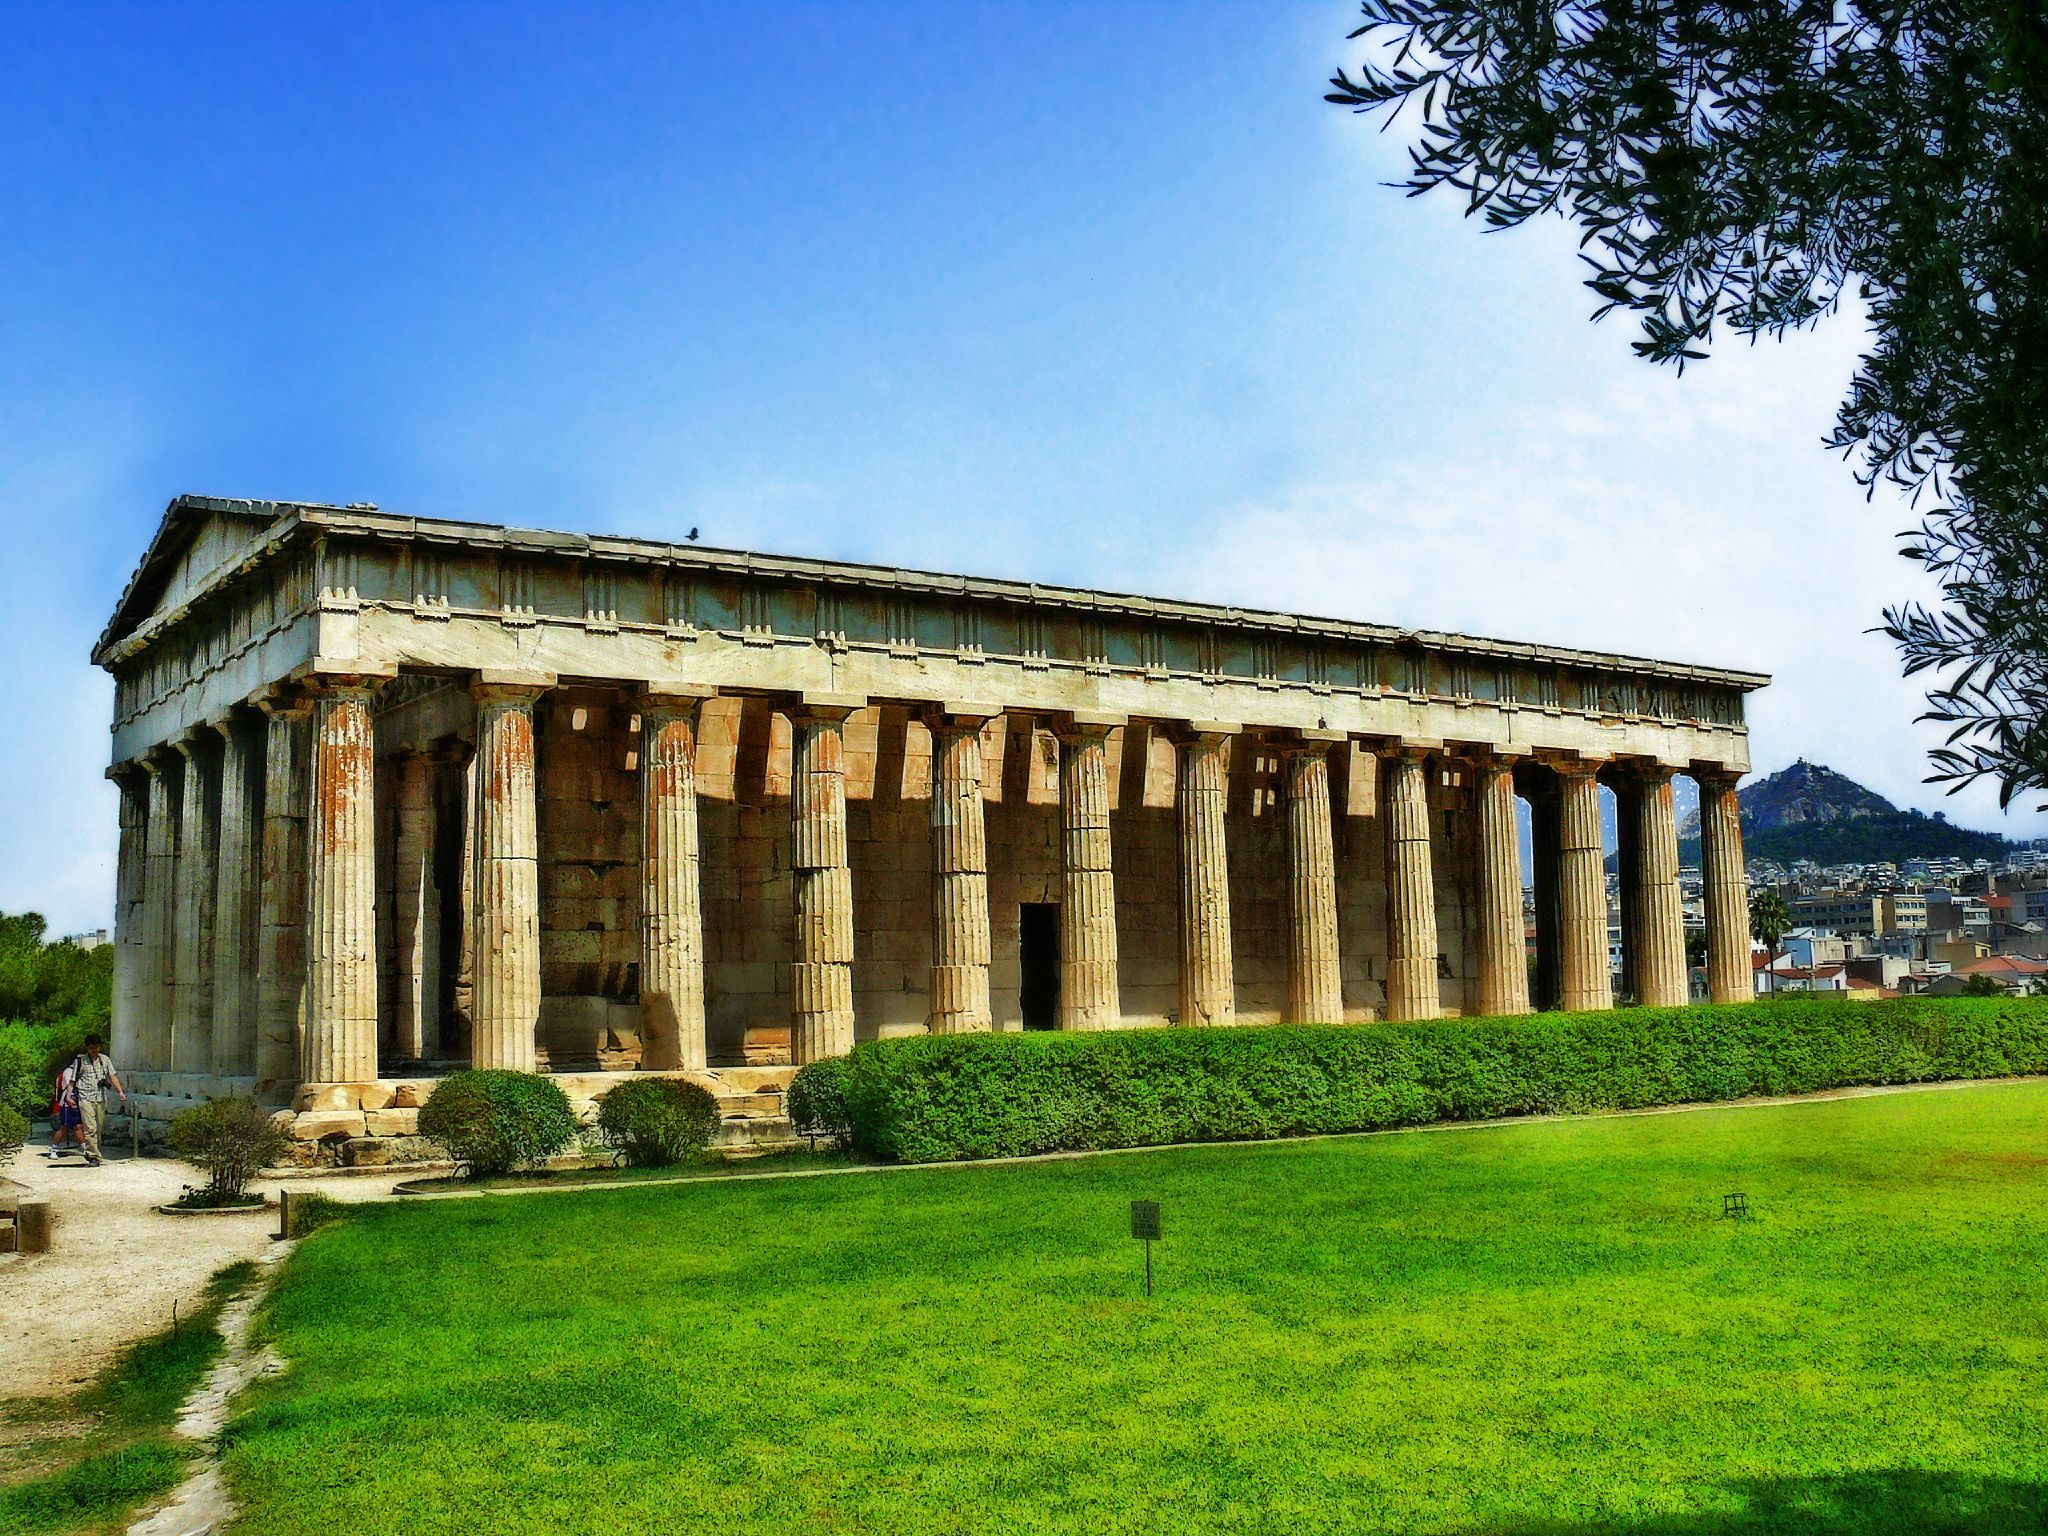 The Temple of Hephaestus 449 BC, also as Theseion after an Athenian hero, is the best-preserved ancient Greek temple; it remains standing largely as built. This temple was the first in Athens to be made of marble and it overlooks the Agora of Athens.  Construction started 2 years before the Parthenon and was dedicated Hephaestus and Athena Ergane, a form of the city's patron goddess responsible for pottery and other crafts.  The project was sponsored by the Athenian politician Pericles.